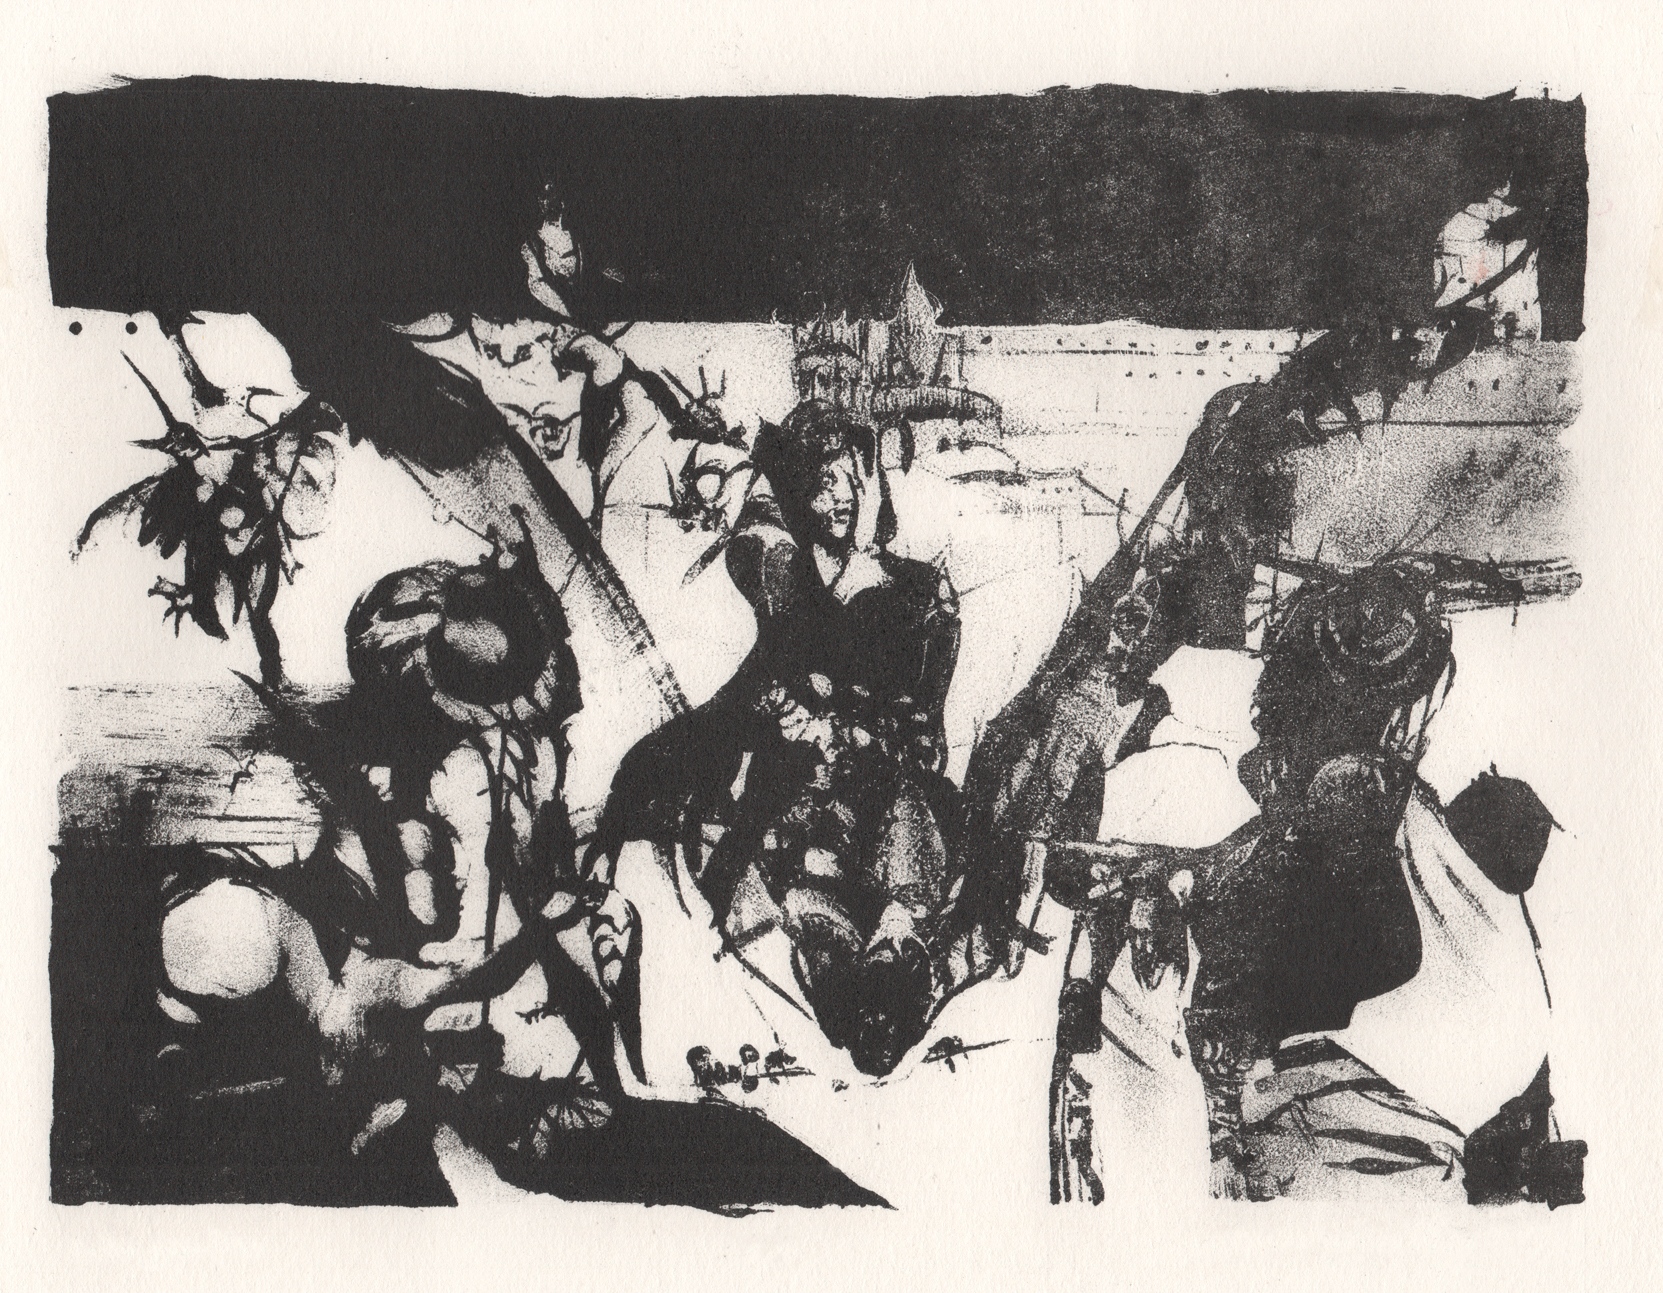 Untitled, lithography.